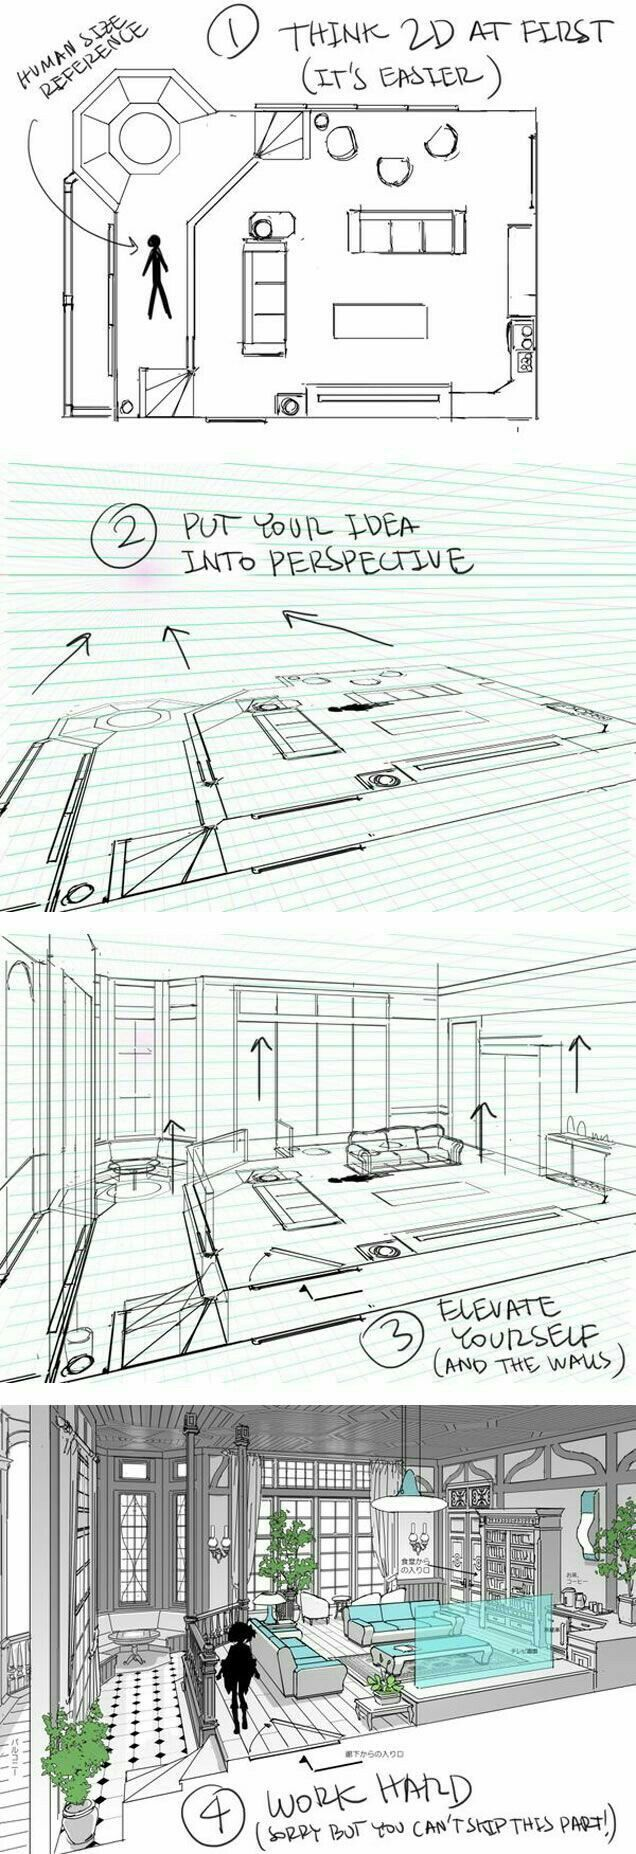 A helpful guide for building interiors digitally